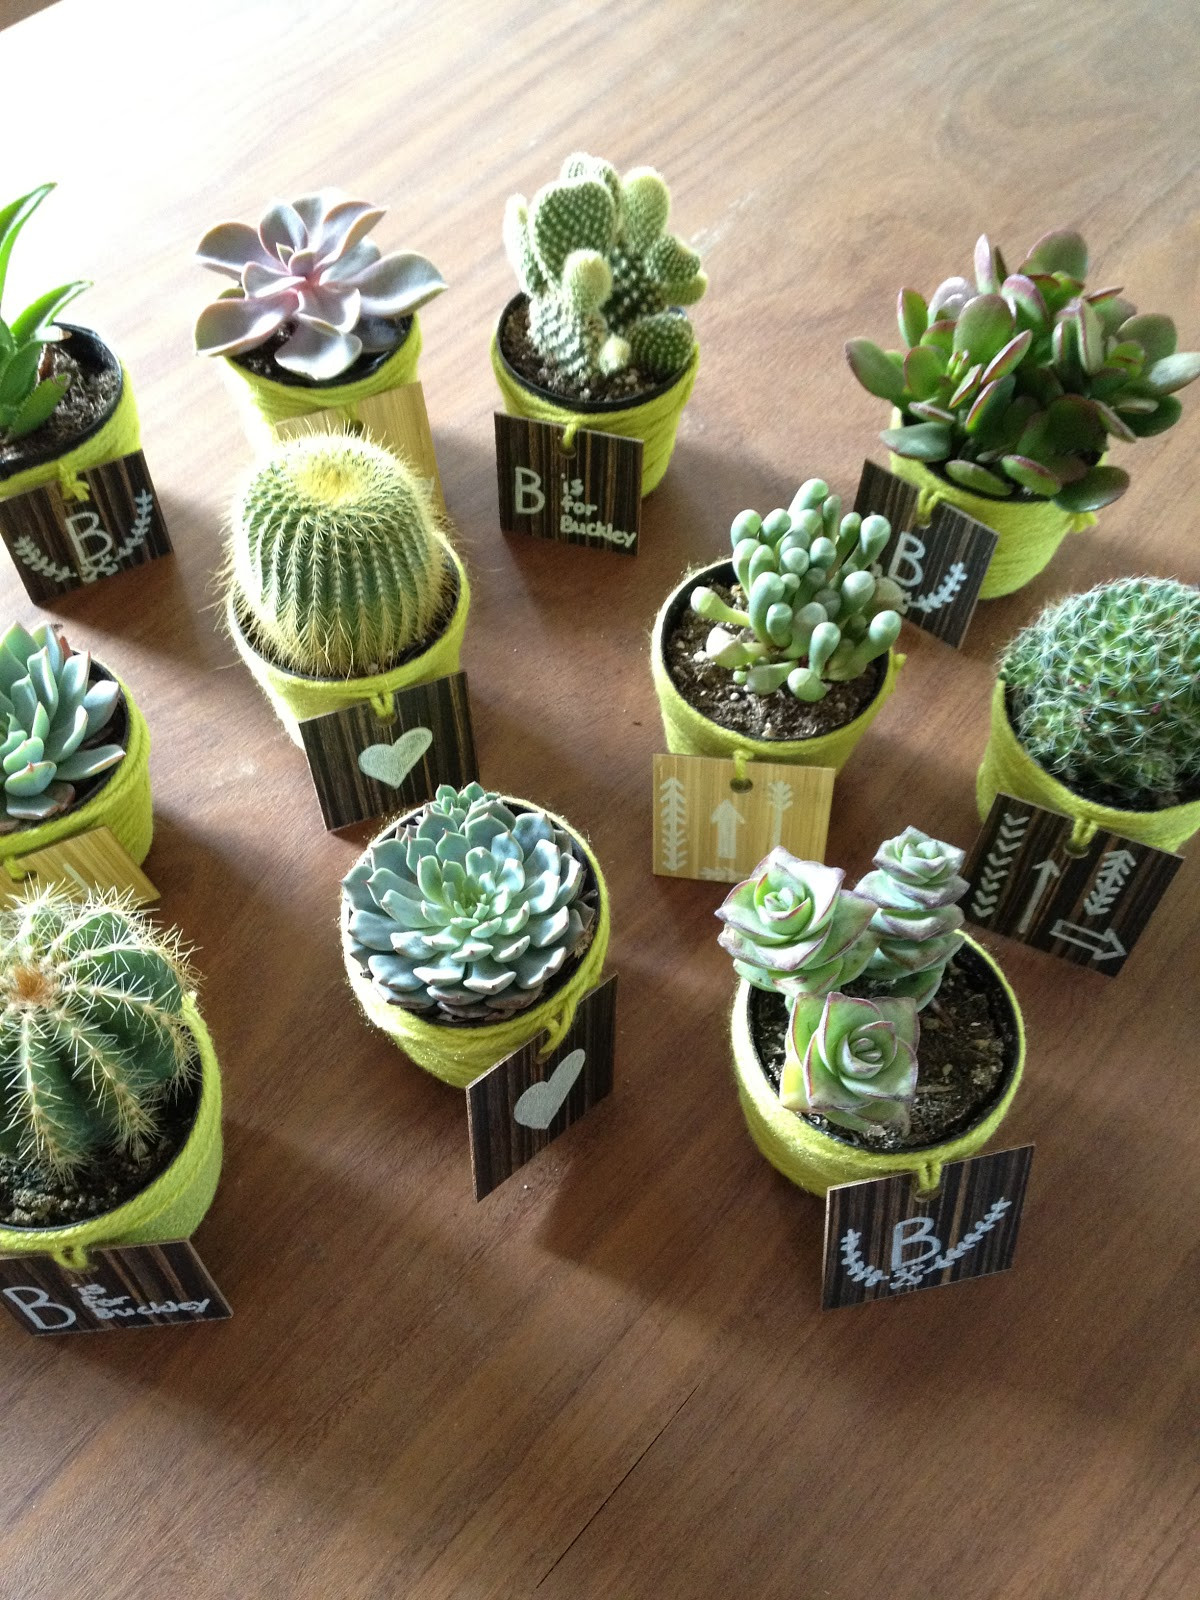 Best ideas about DIY Party Favors . Save or Pin diy party favors Now.